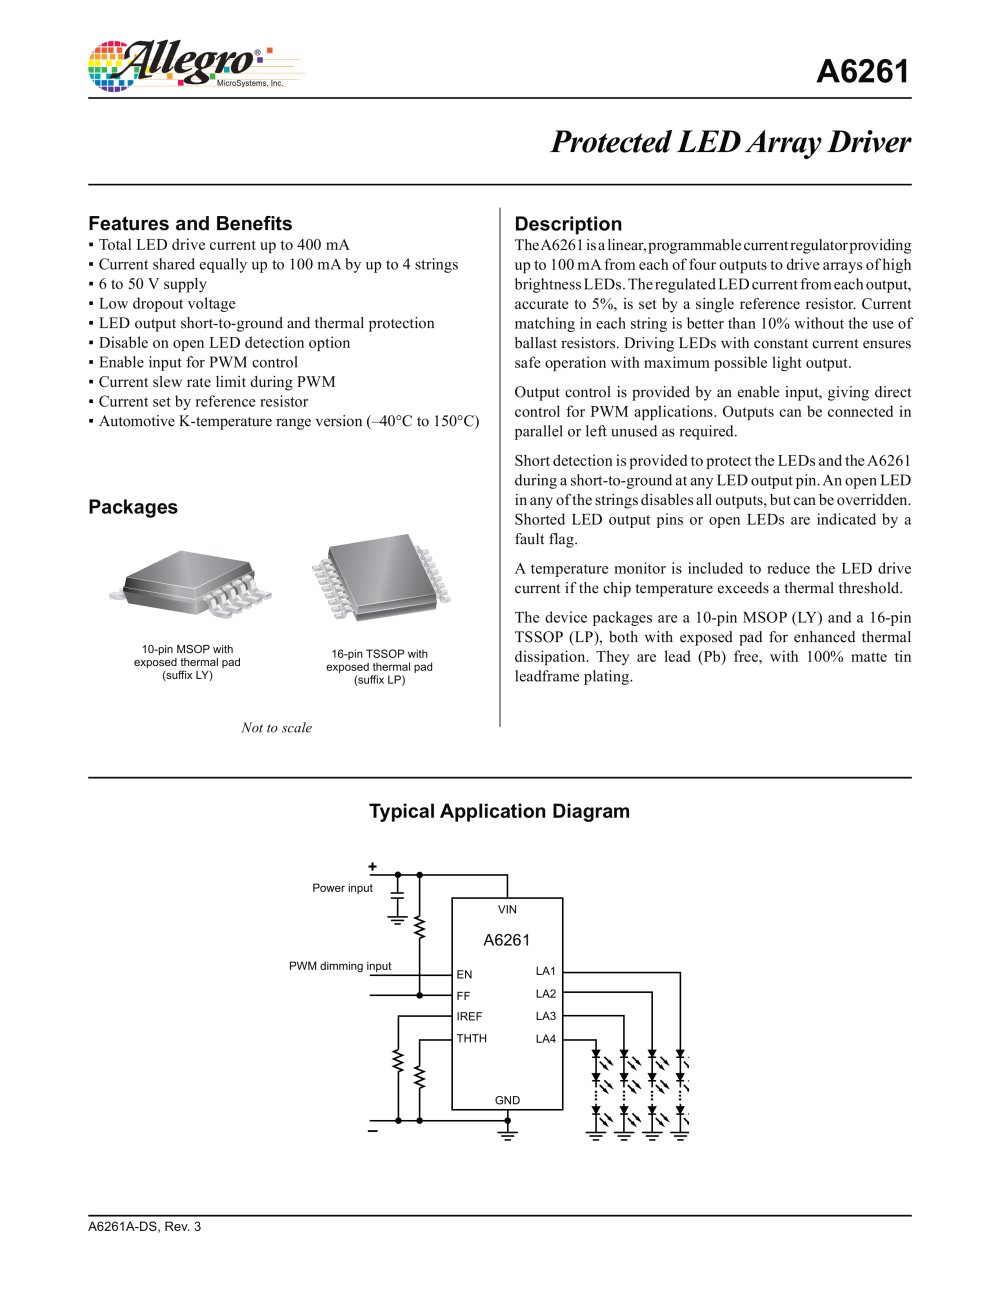 A6261 Protected Led Array Driver Allegro Microsystems Pdf Current Regulator 1 14 Pages